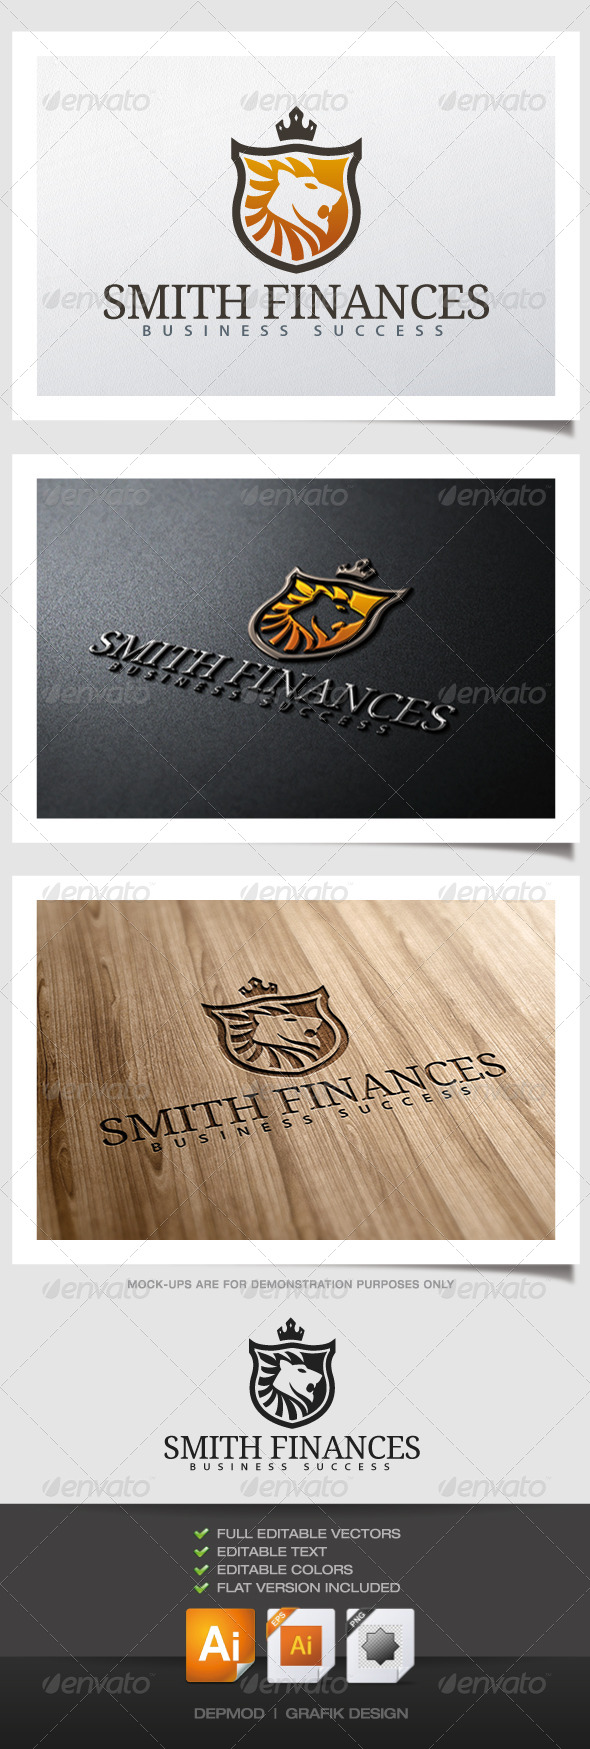 GraphicRiver Smith Finances Logo 6216610